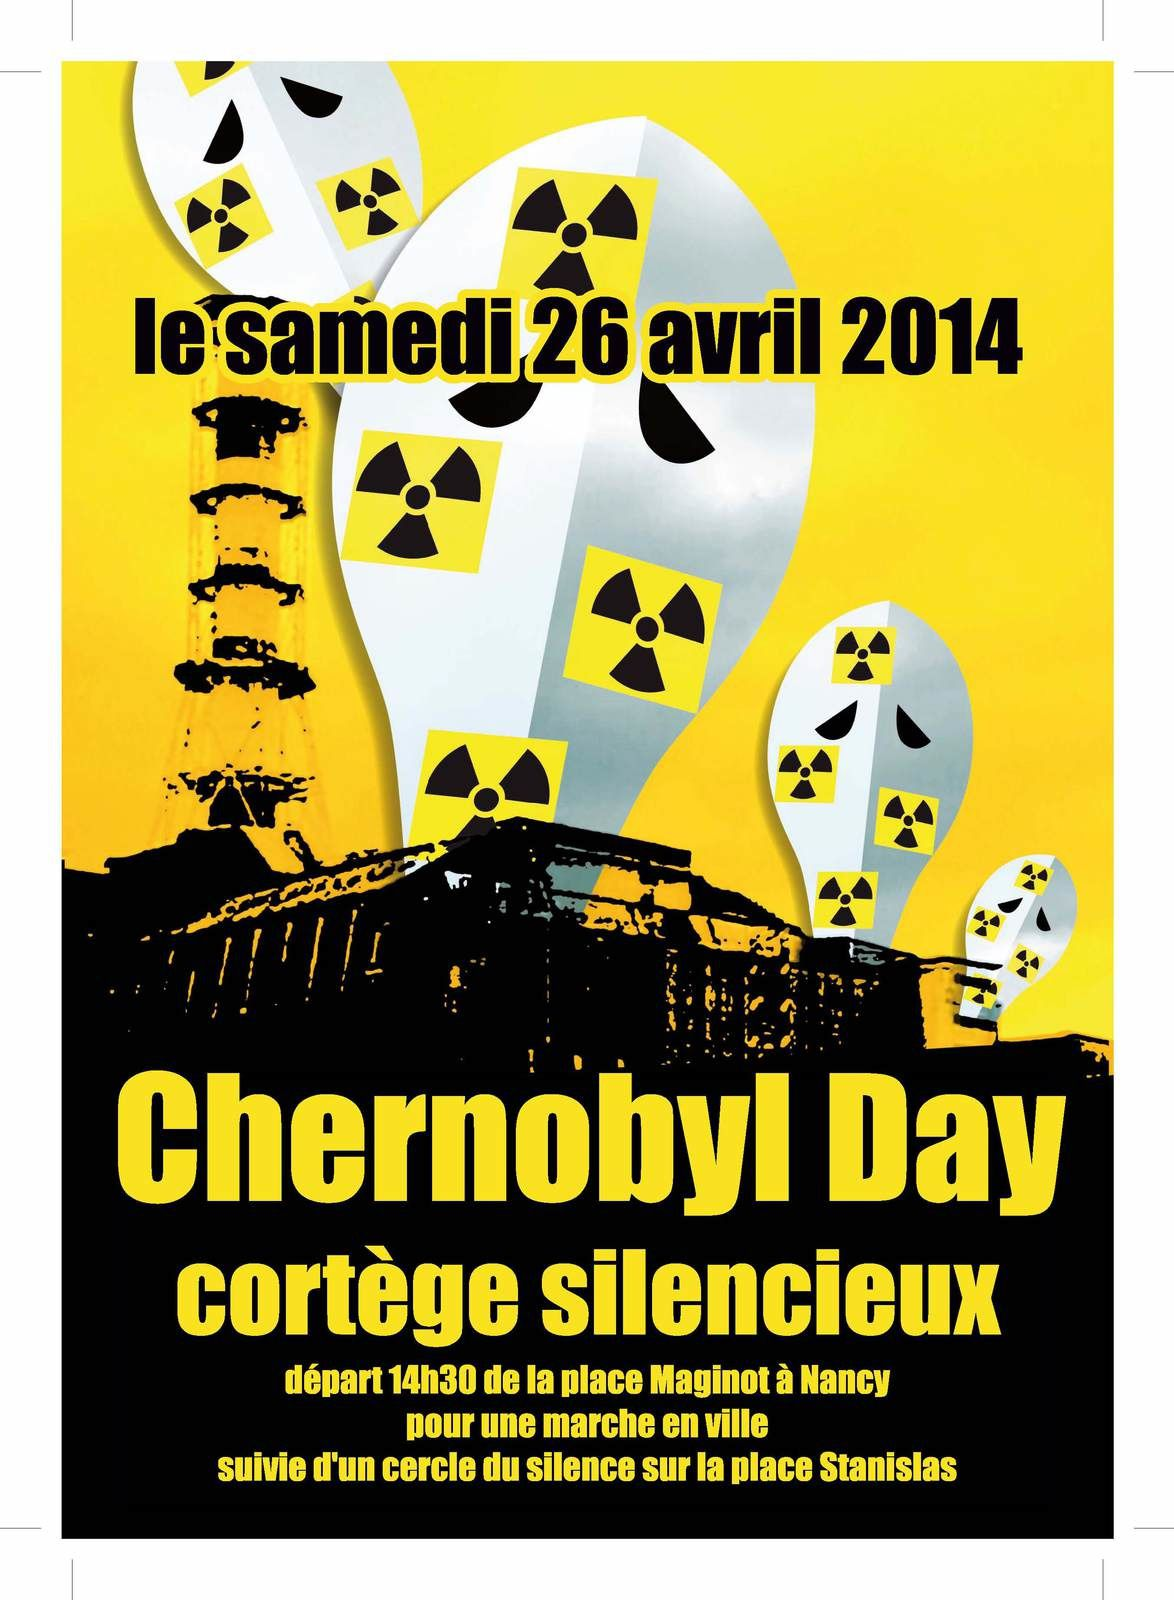 Nancy - samedi 26 avril - Chernobyl day